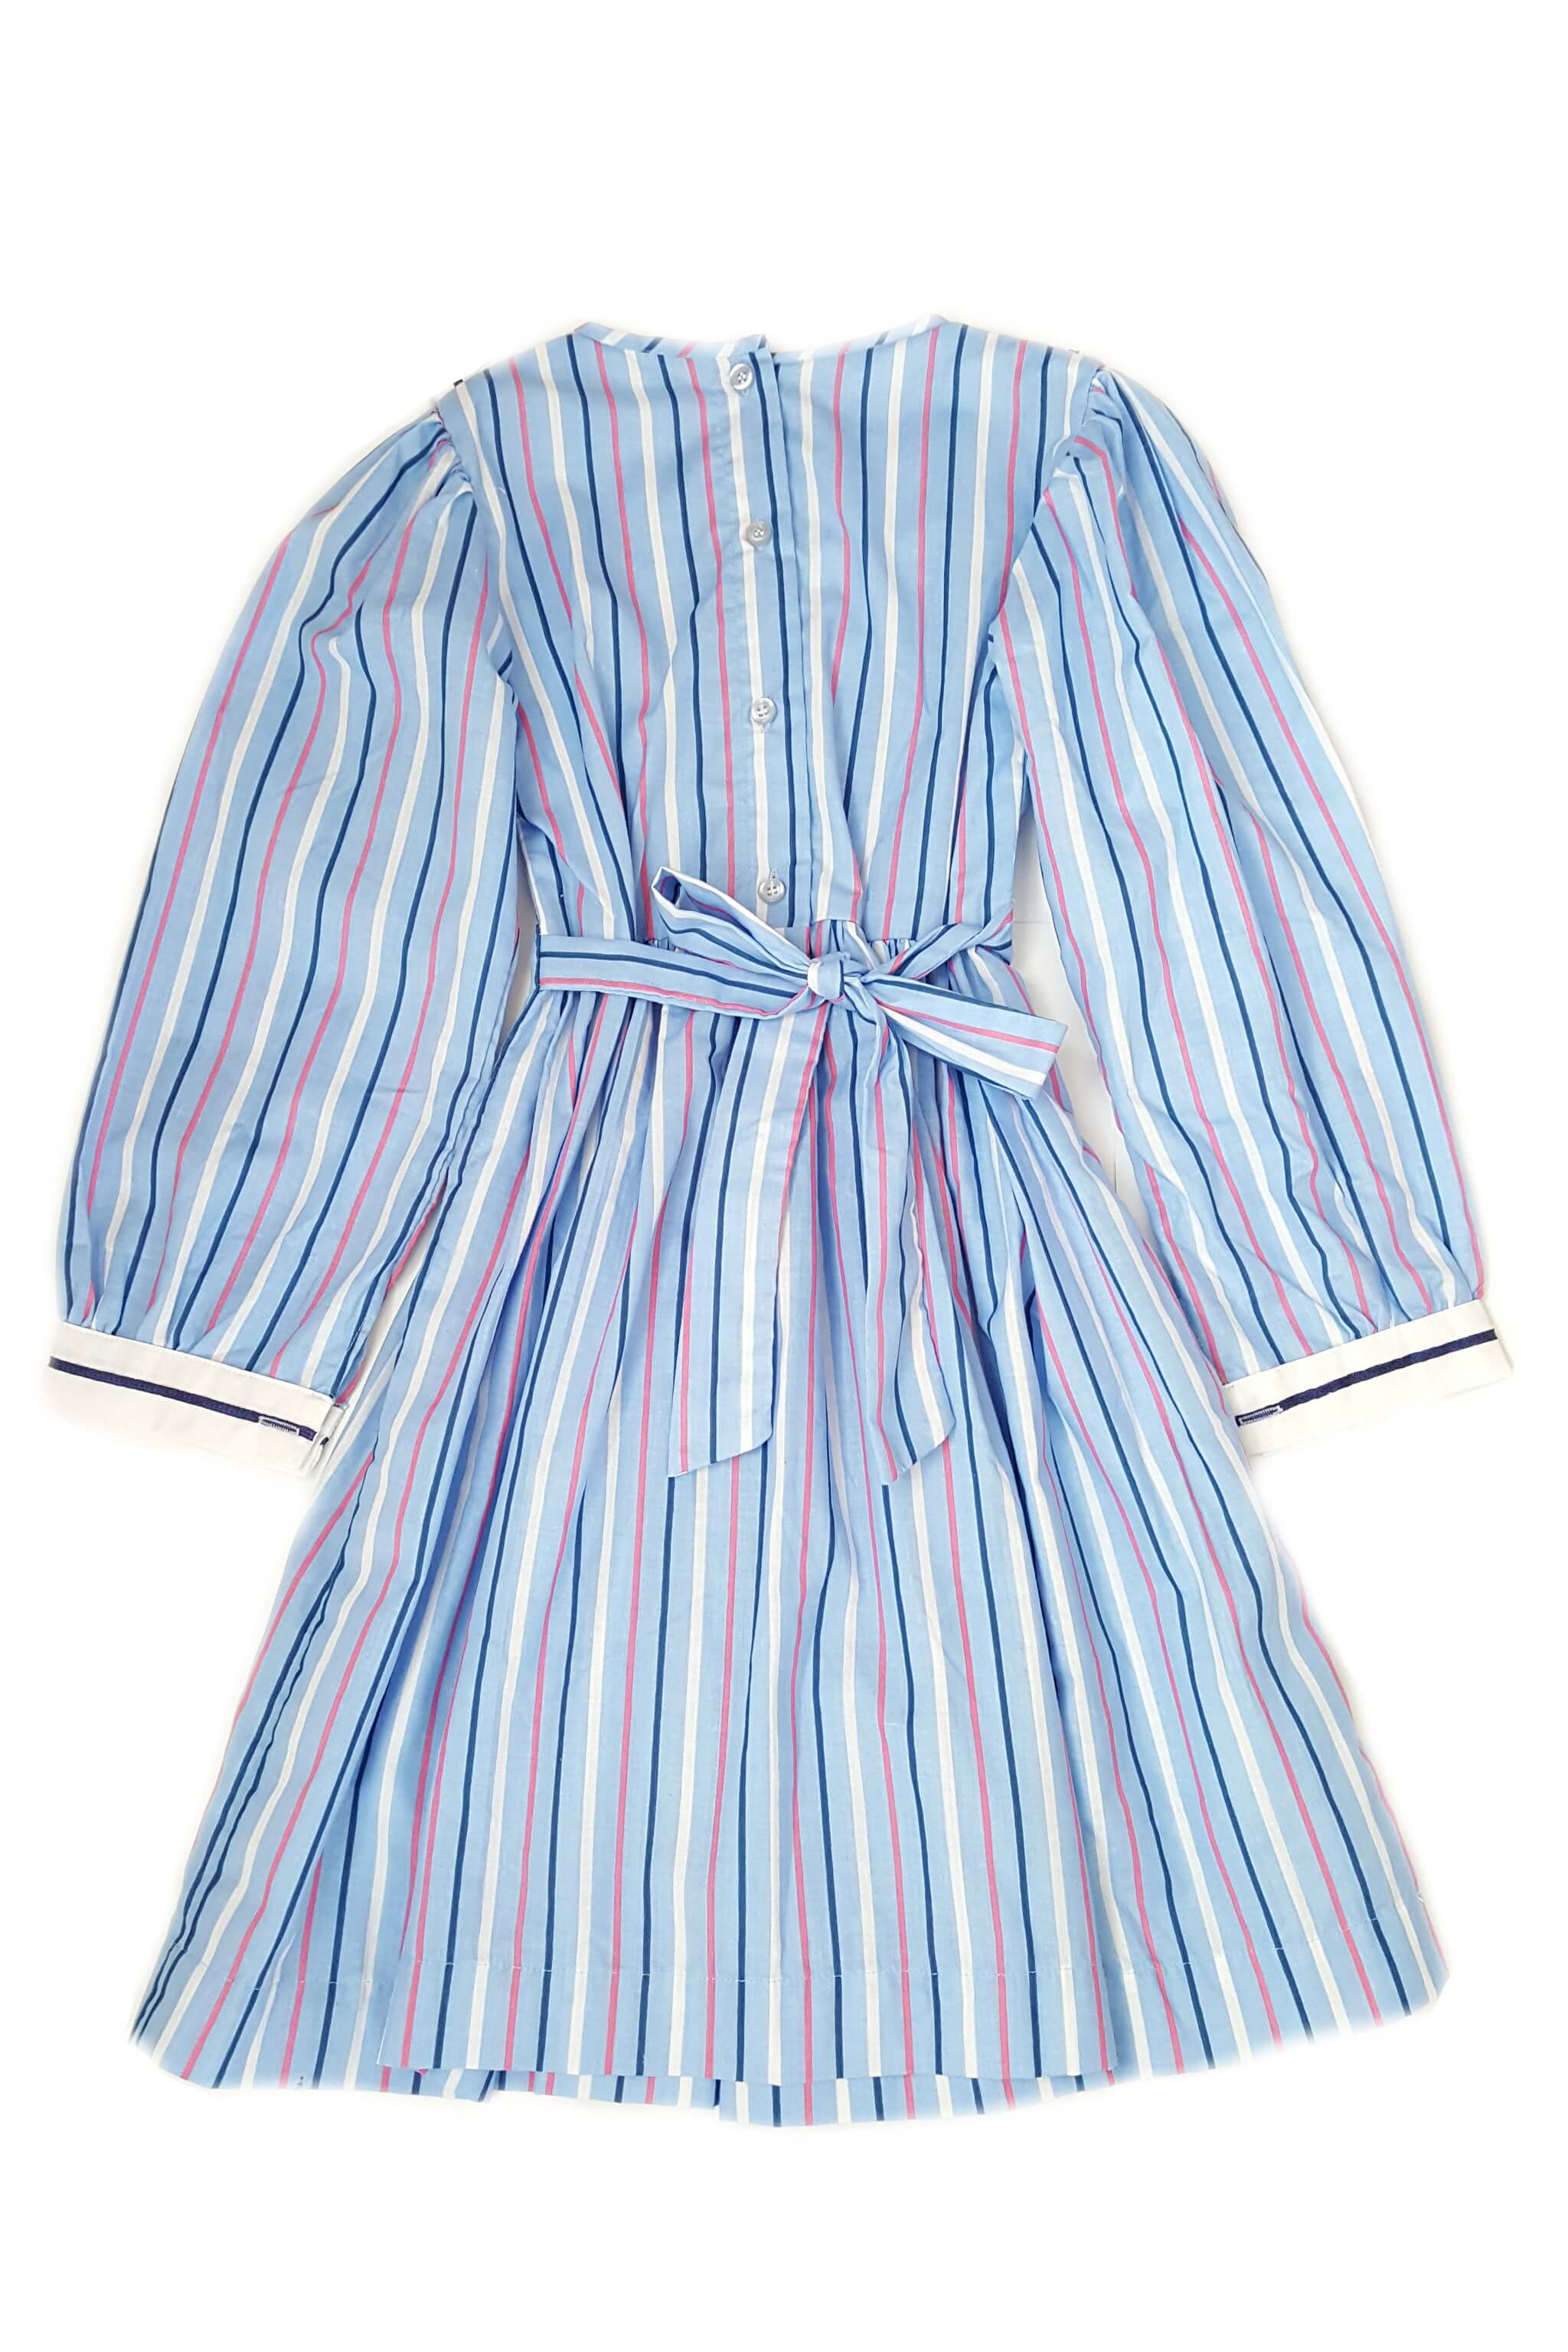 Sky blue, pink and white candy-stripe smocked dress with button back opening and a sash to tie at the waist